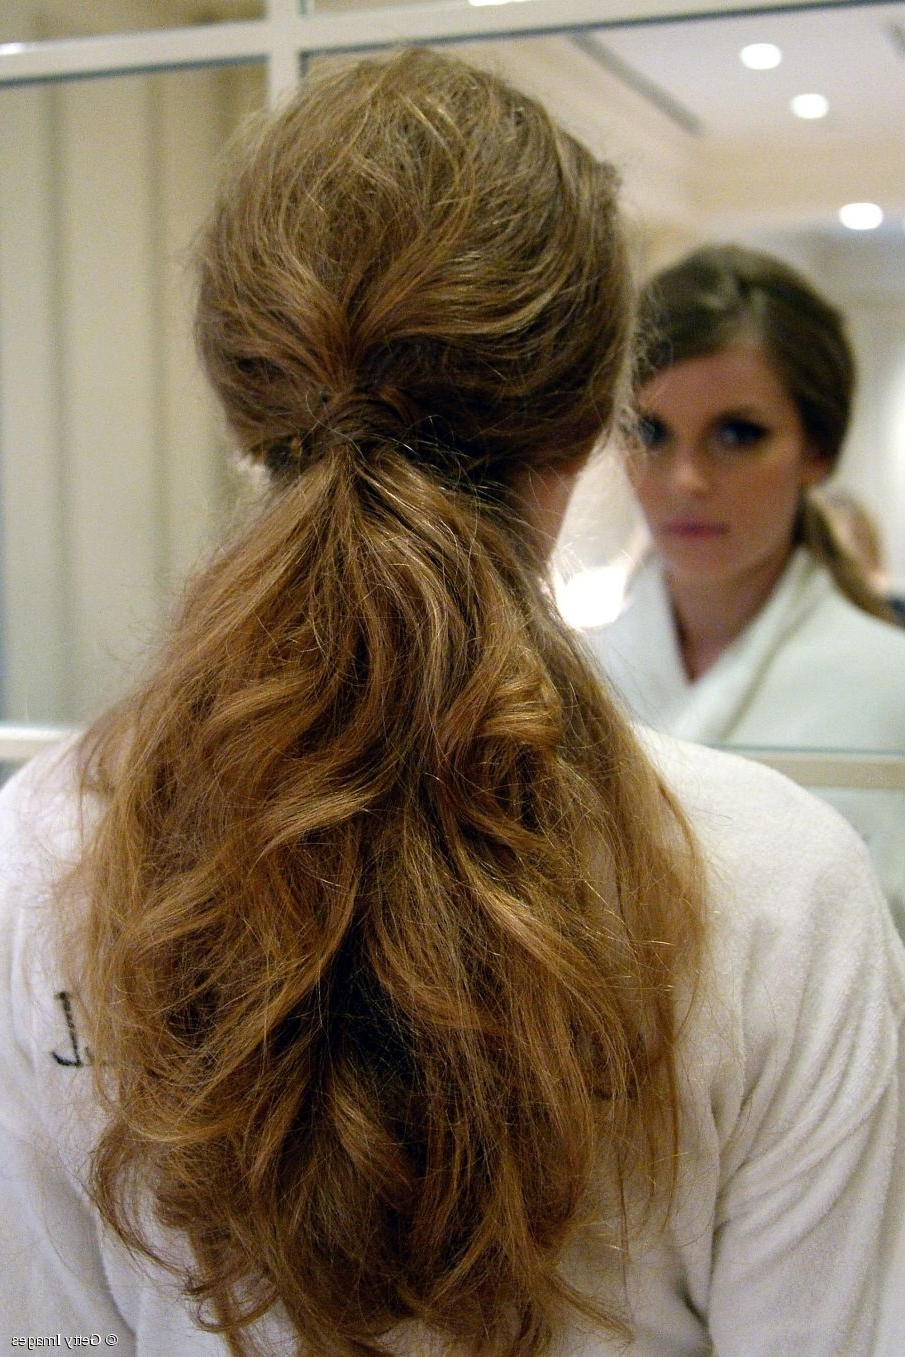 Hairstyle Trends: 3 Ways To Wear A Low Ponytail Throughout Most Recent Messy Low Ponytail Hairstyles (View 7 of 20)